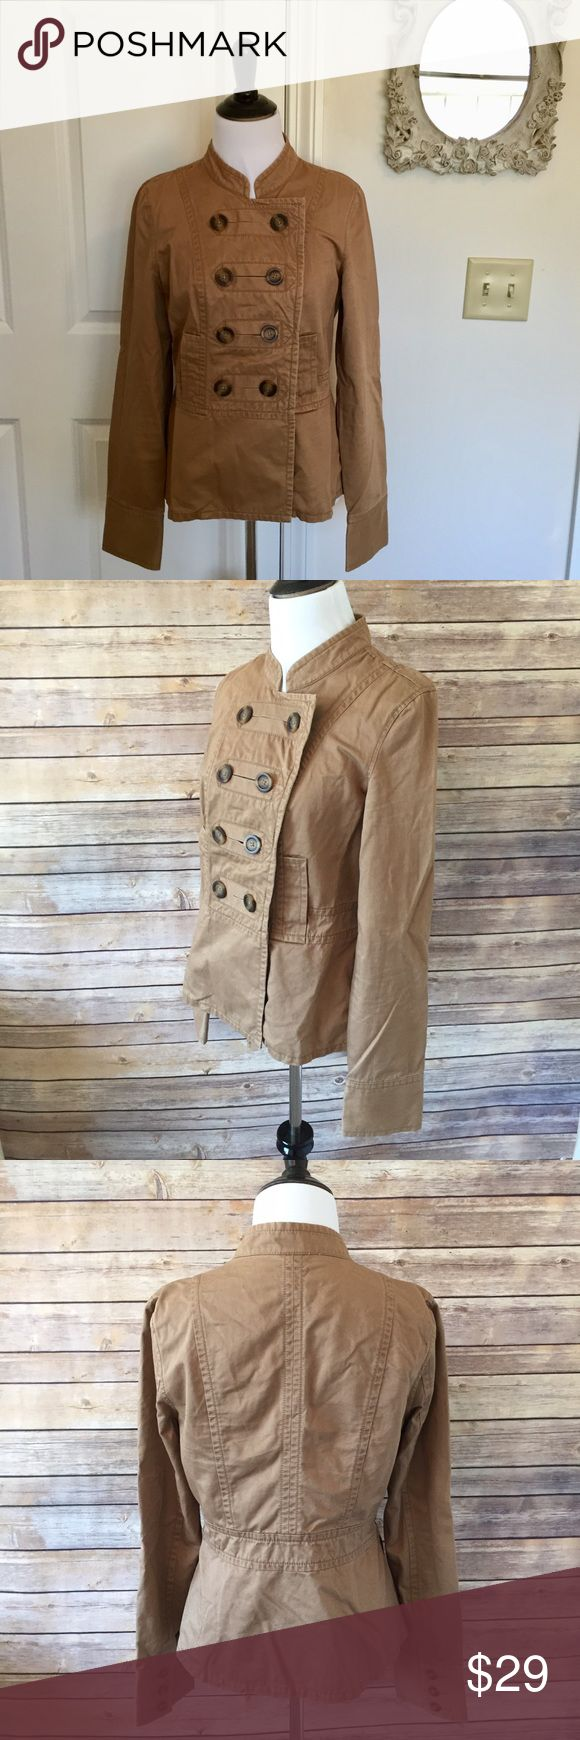 "⚡️️FLASH SALE!⚡️ OLD NAVY Jacket Gorgeous khaki jacket from Old Navy. Double buttons down the front. Size small. Faux front pockets. 100% cotton shell. 23"" long. Ask all your questions and let's get this perfect jacket home to you! Old Navy Jackets & Coats"